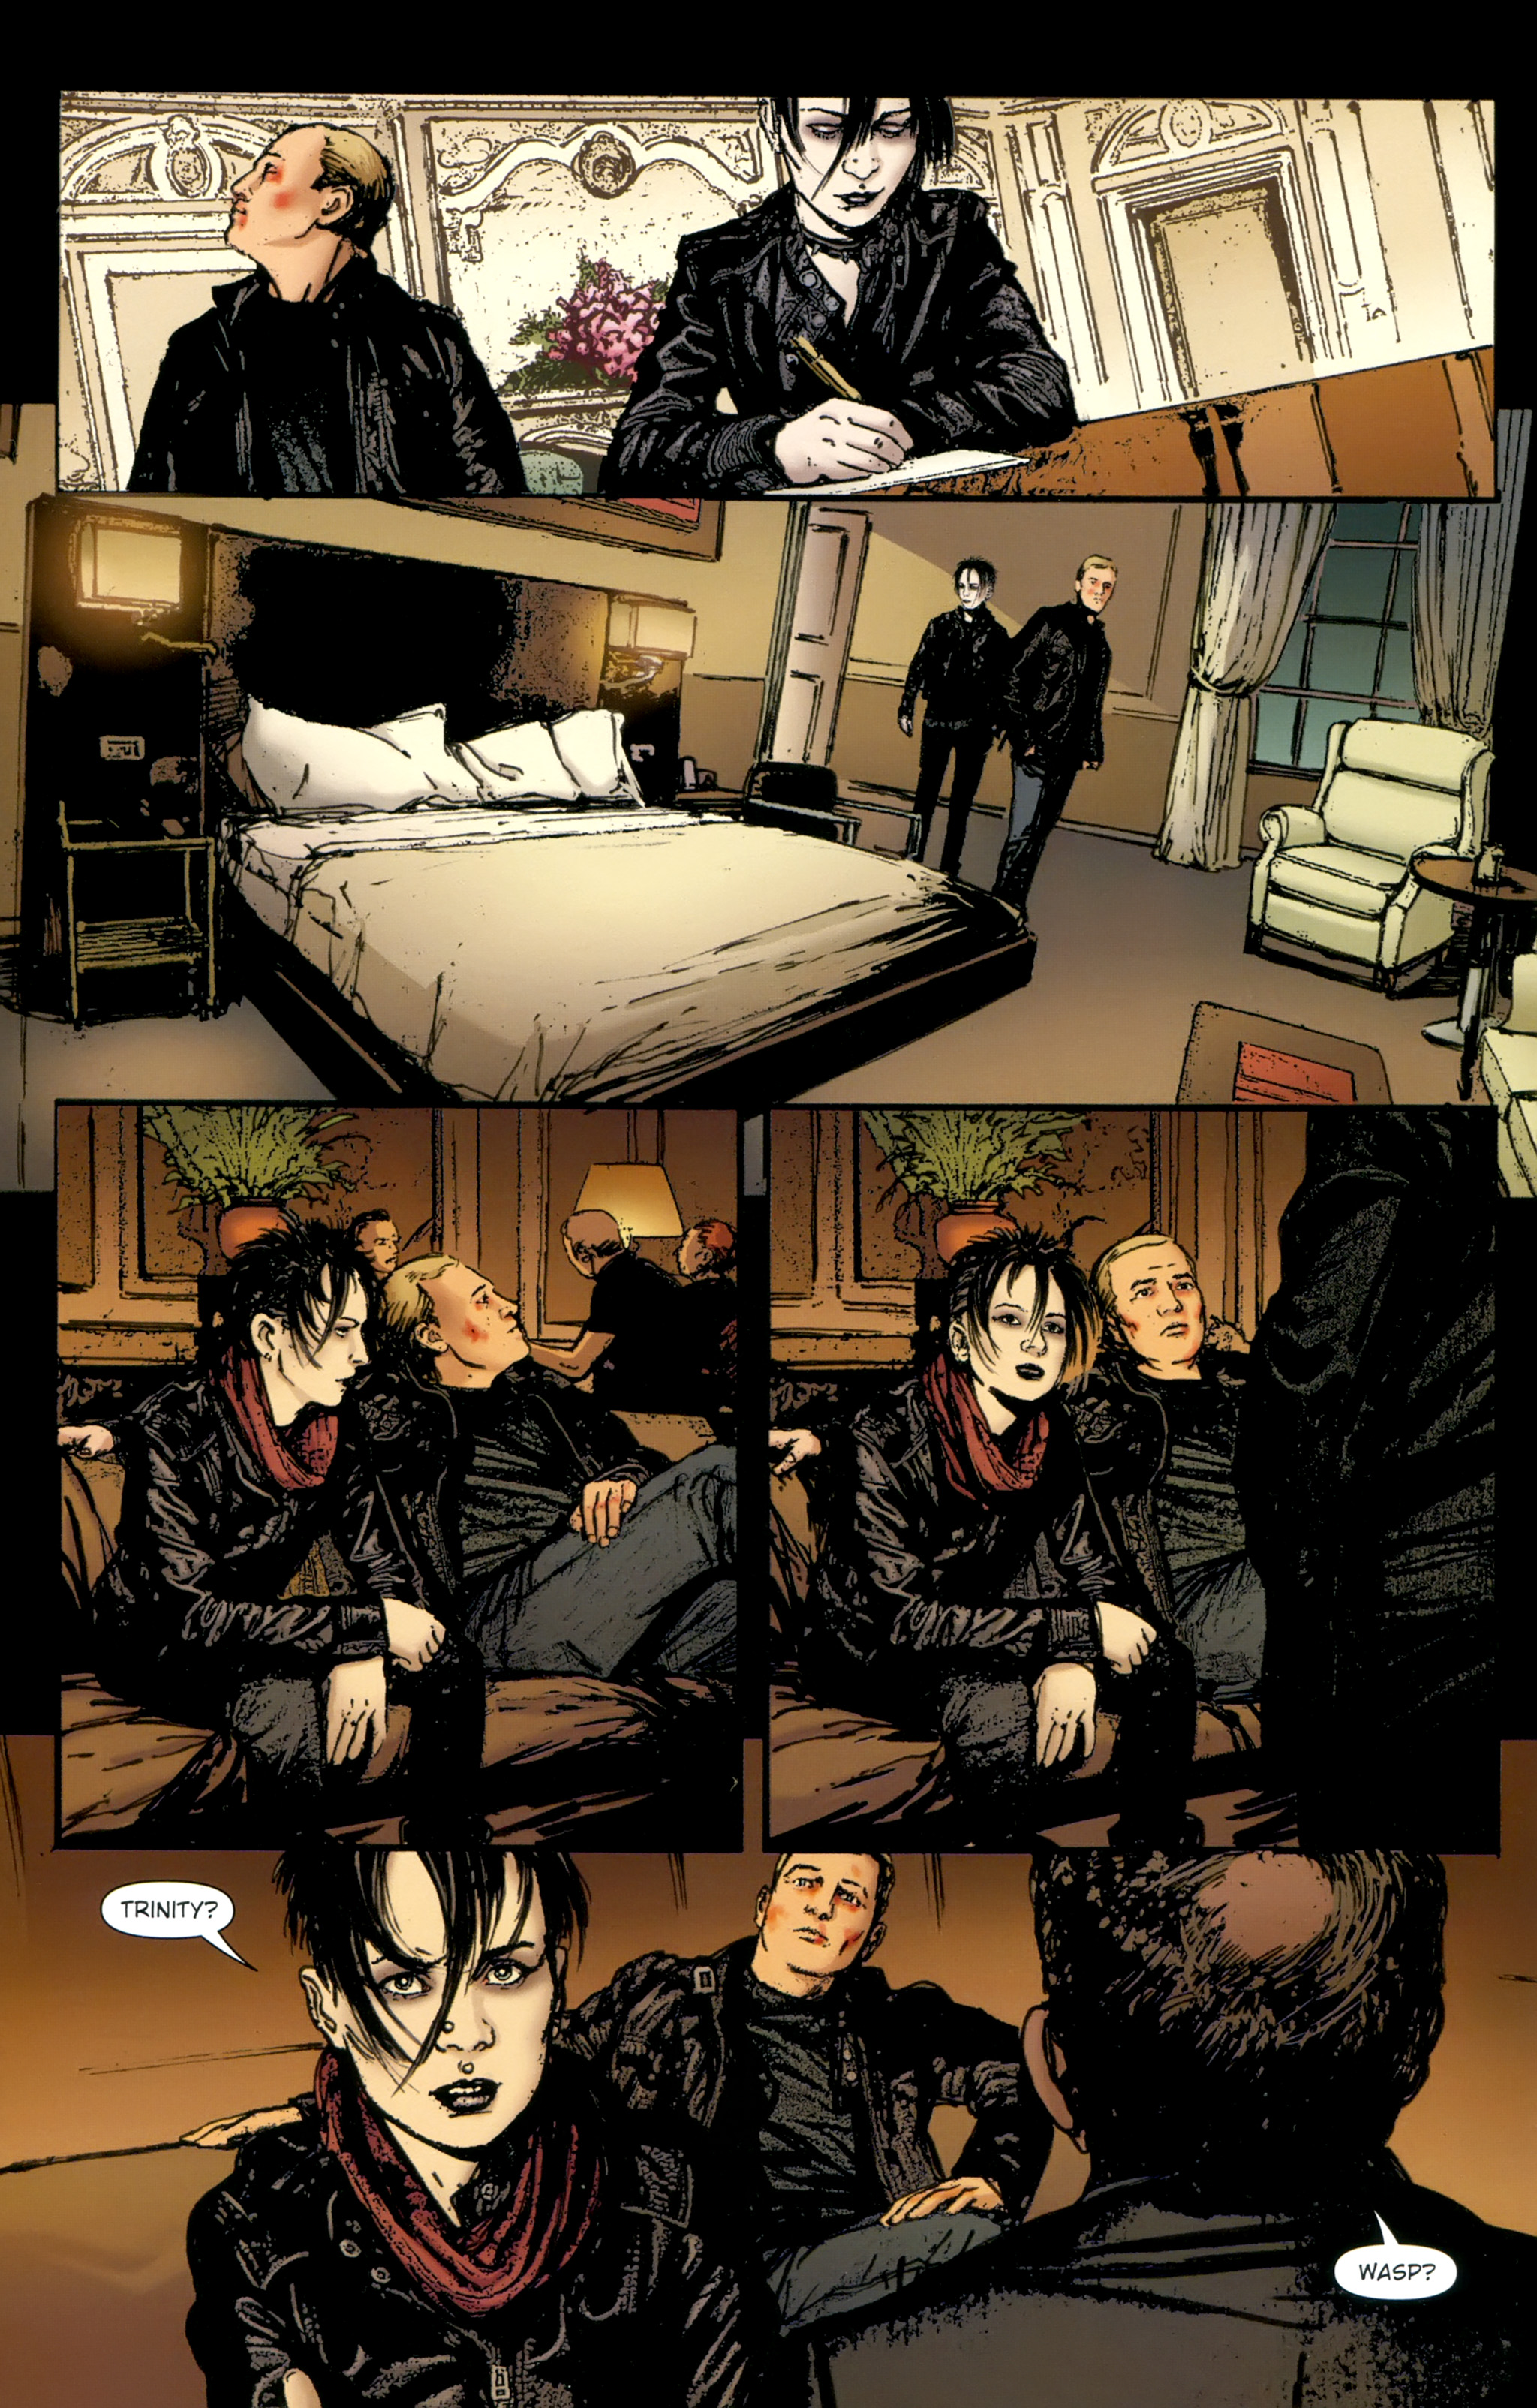 Read online The Girl With the Dragon Tattoo comic -  Issue # TPB 2 - 124